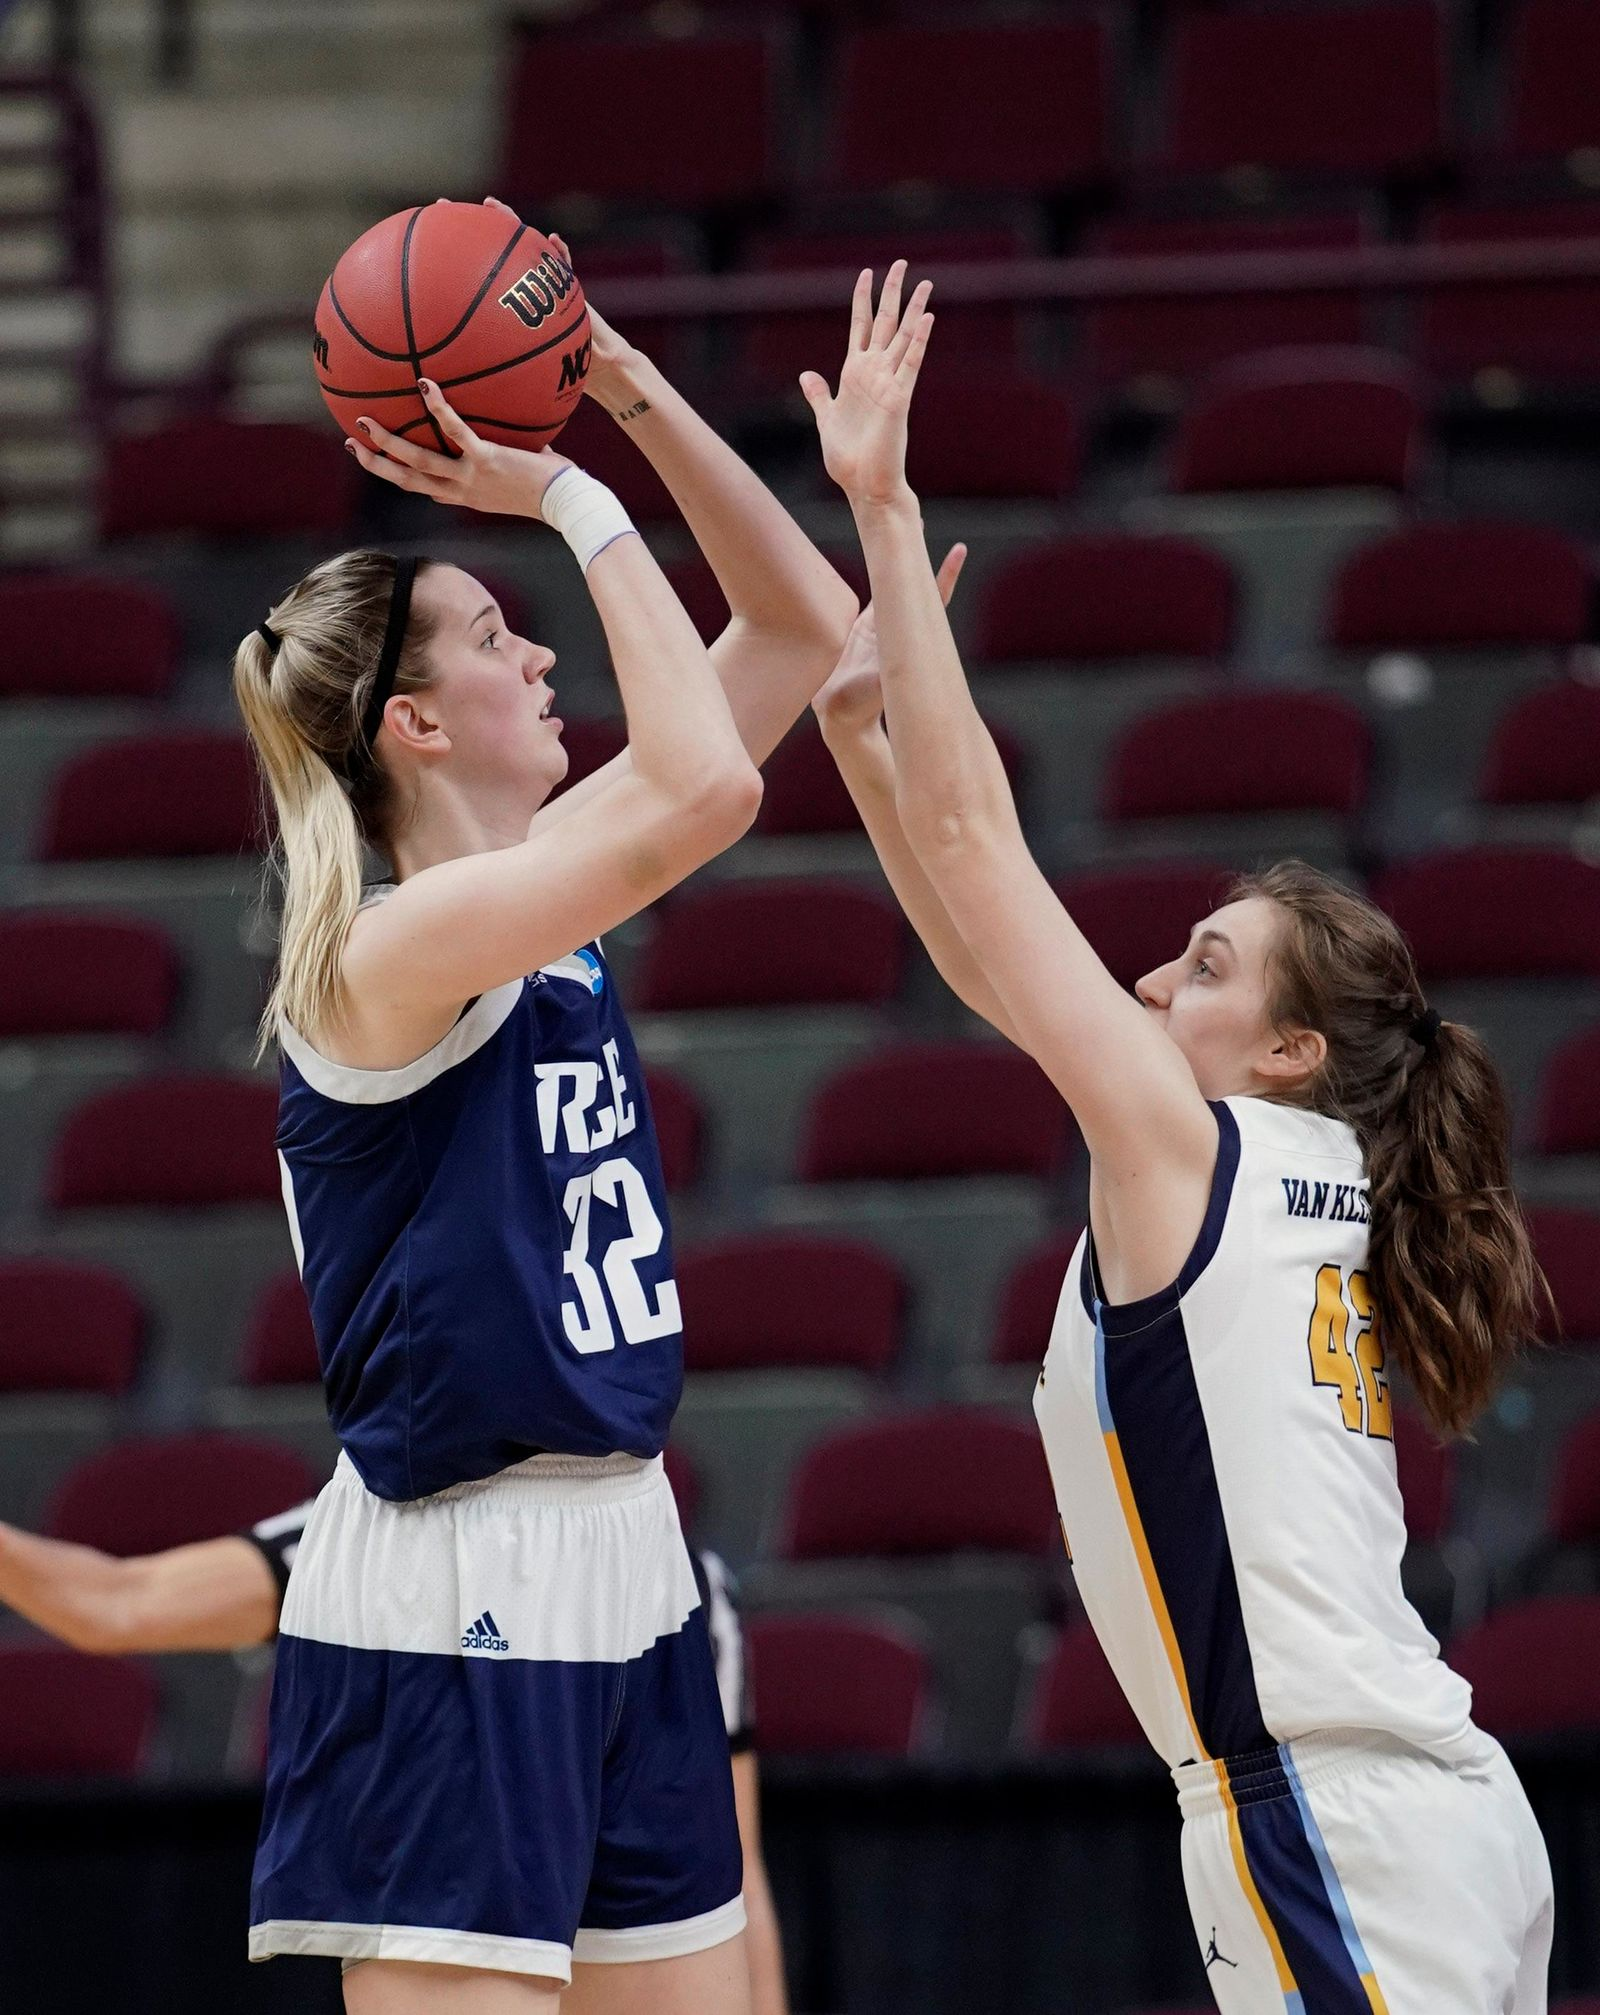 Rice's Nancy Mulkey (32) shoots as Marquette's Lauren Van Kleunen (42) defends during the first half of a first round women's college basketball game in the NCAA Tournament Friday, March 22, 2019, in College Station, Texas. (AP Photo/David J. Phillip)